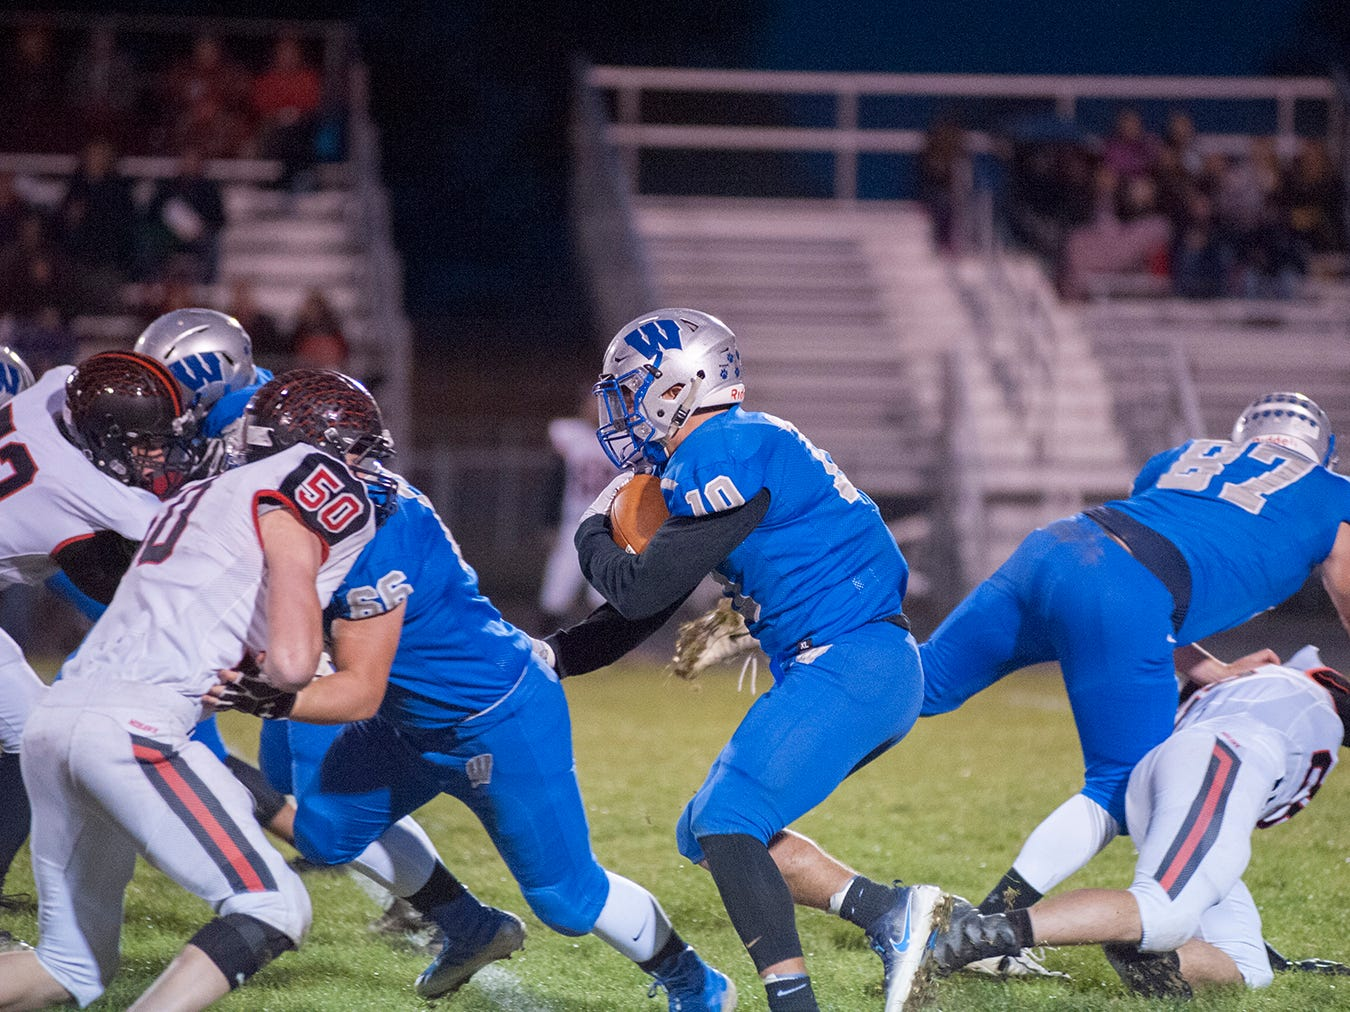 Wynford's Blake Sparks runs with the ball.